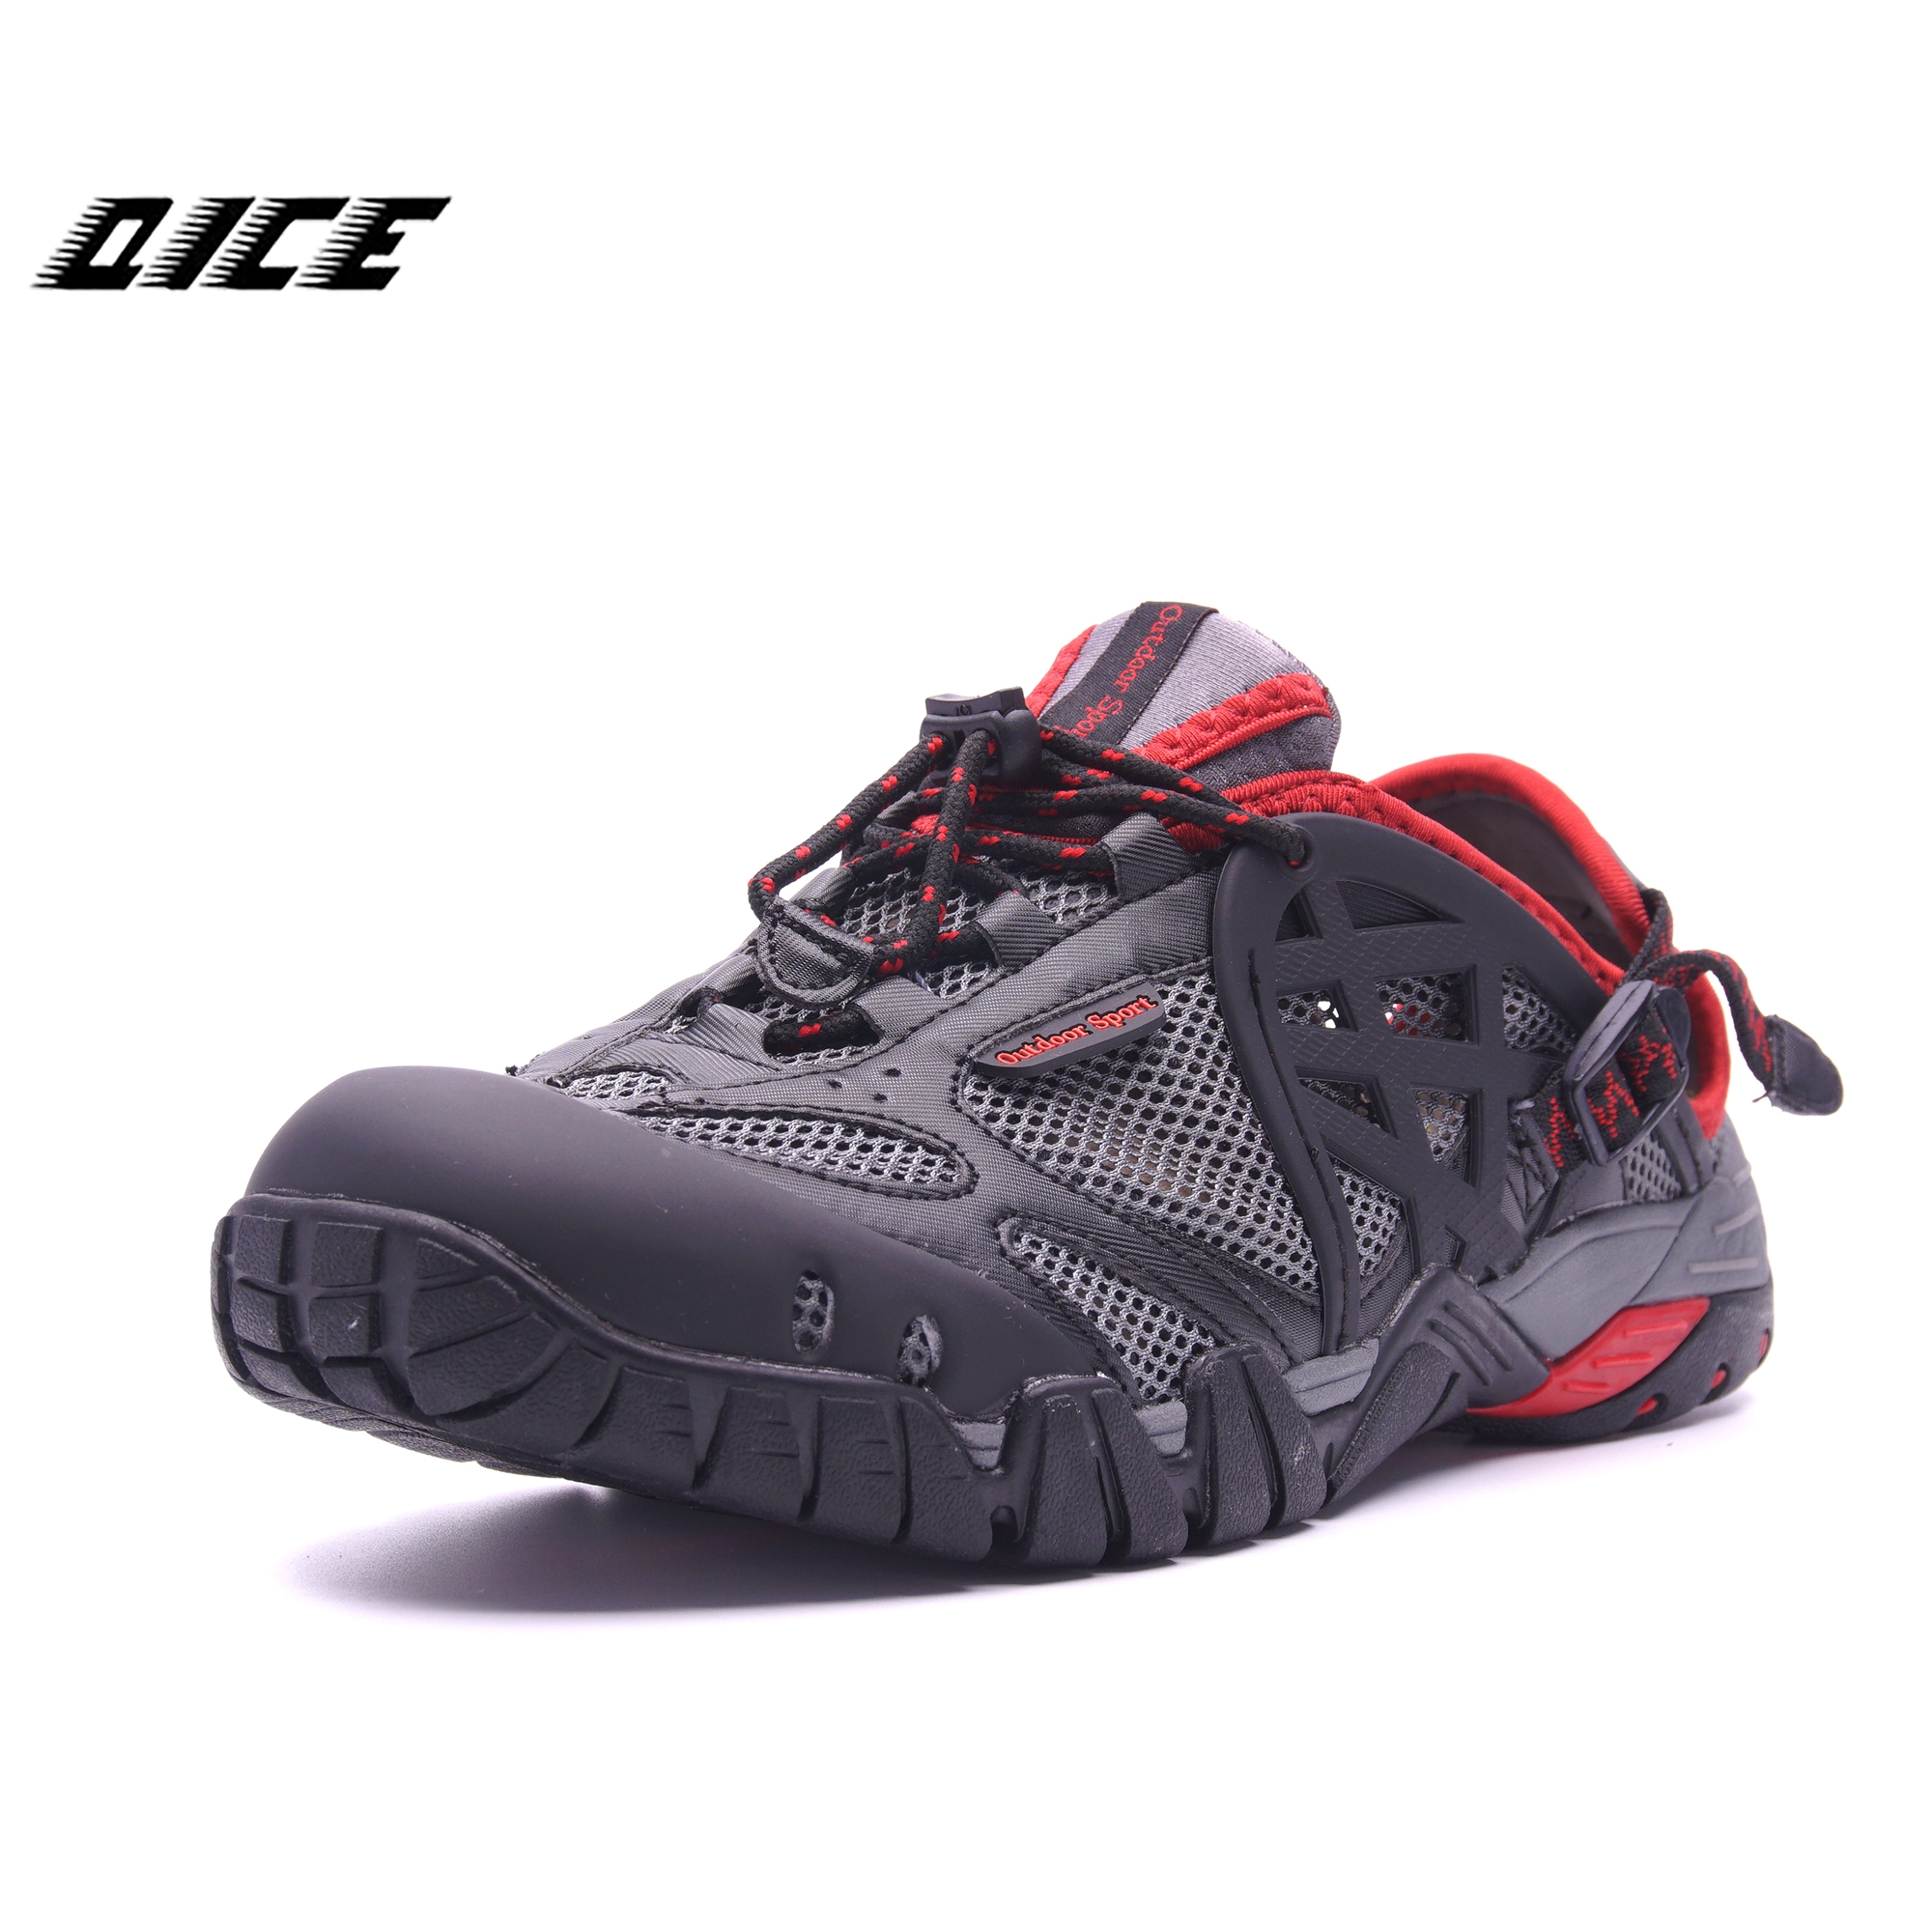 2017 Men Hiking Shoes Outdoor Sneakers Breathable Sport Shoes Men Big Size Hiking Sandals For Men Trekking Trail Water Sandals peak sport speed eagle v men basketball shoes cushion 3 revolve tech sneakers breathable damping wear athletic boots eur 40 50